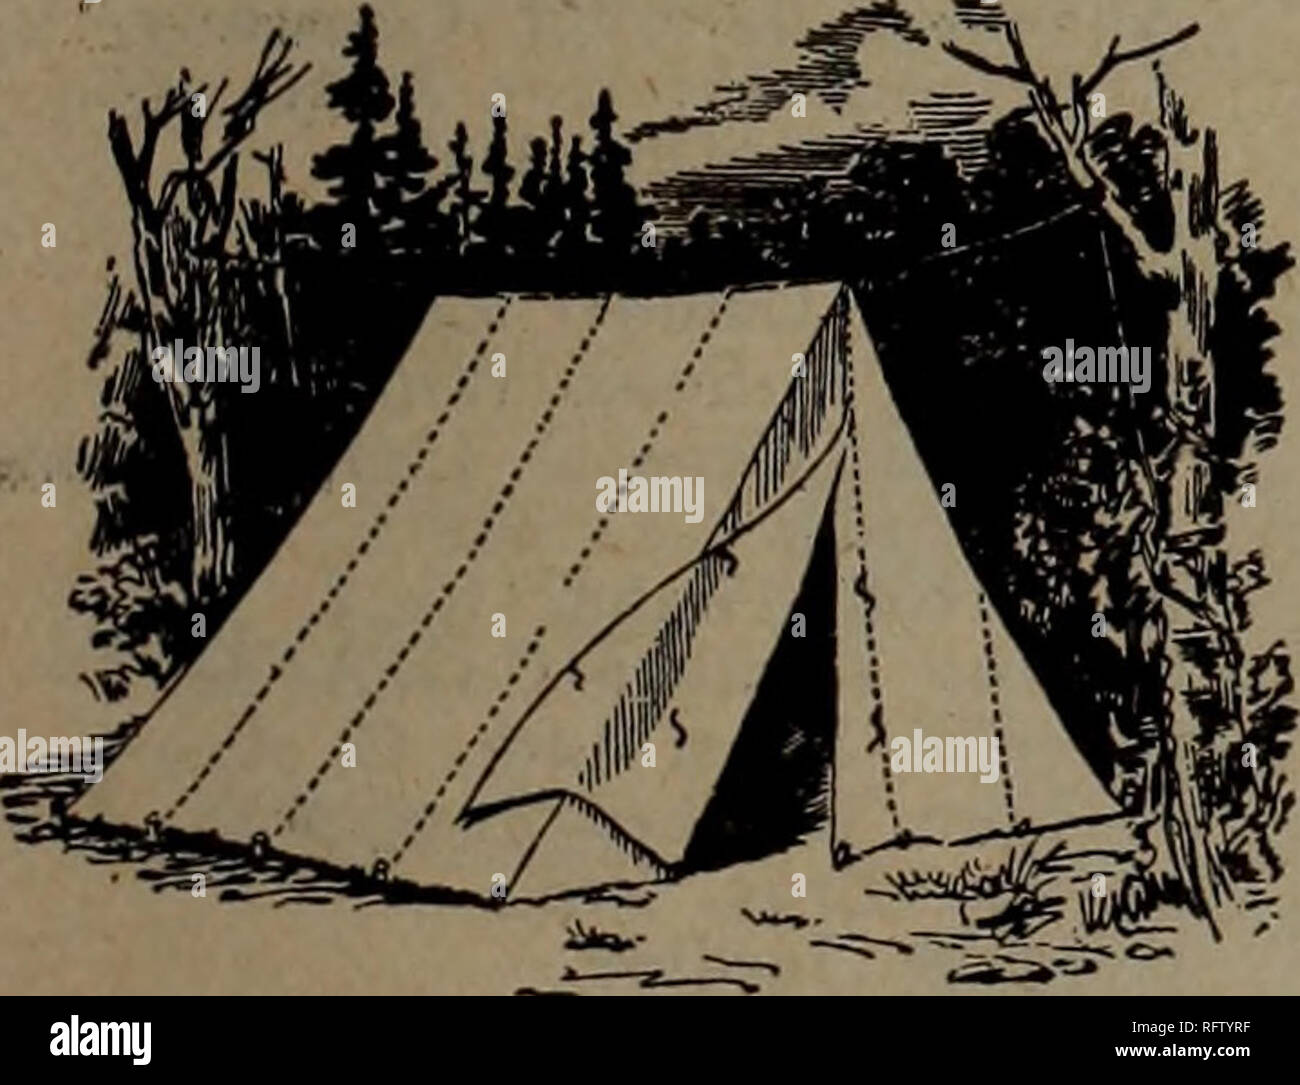 Wedge Tent Stock Photos & Wedge Tent Stock Images - Alamy